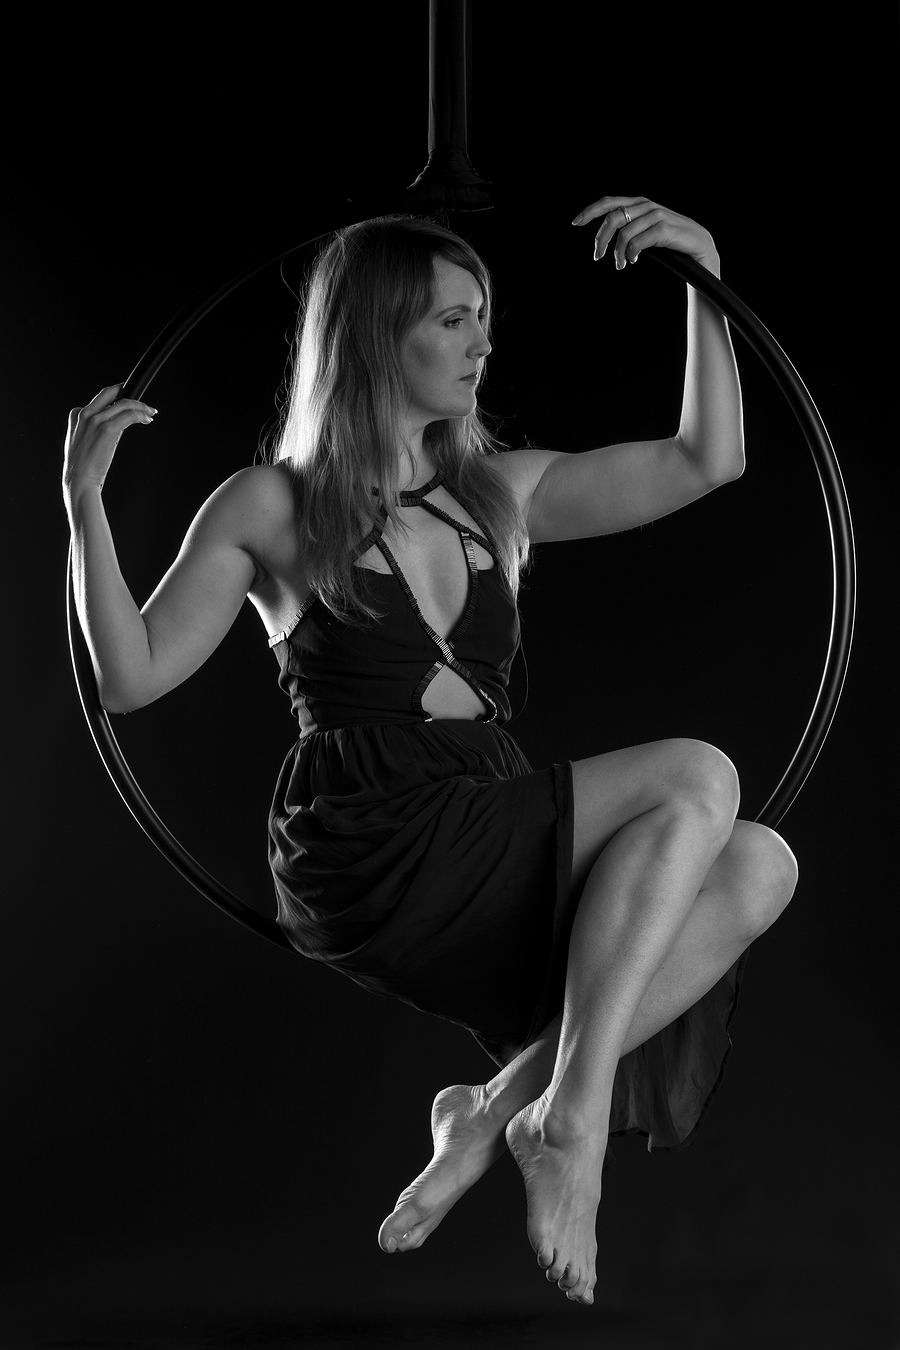 A bit of hanging around in the hoop / Model Natural Happy Woman, Taken at Inspire Studios Ltd / Uploaded 18th April 2018 @ 04:49 PM